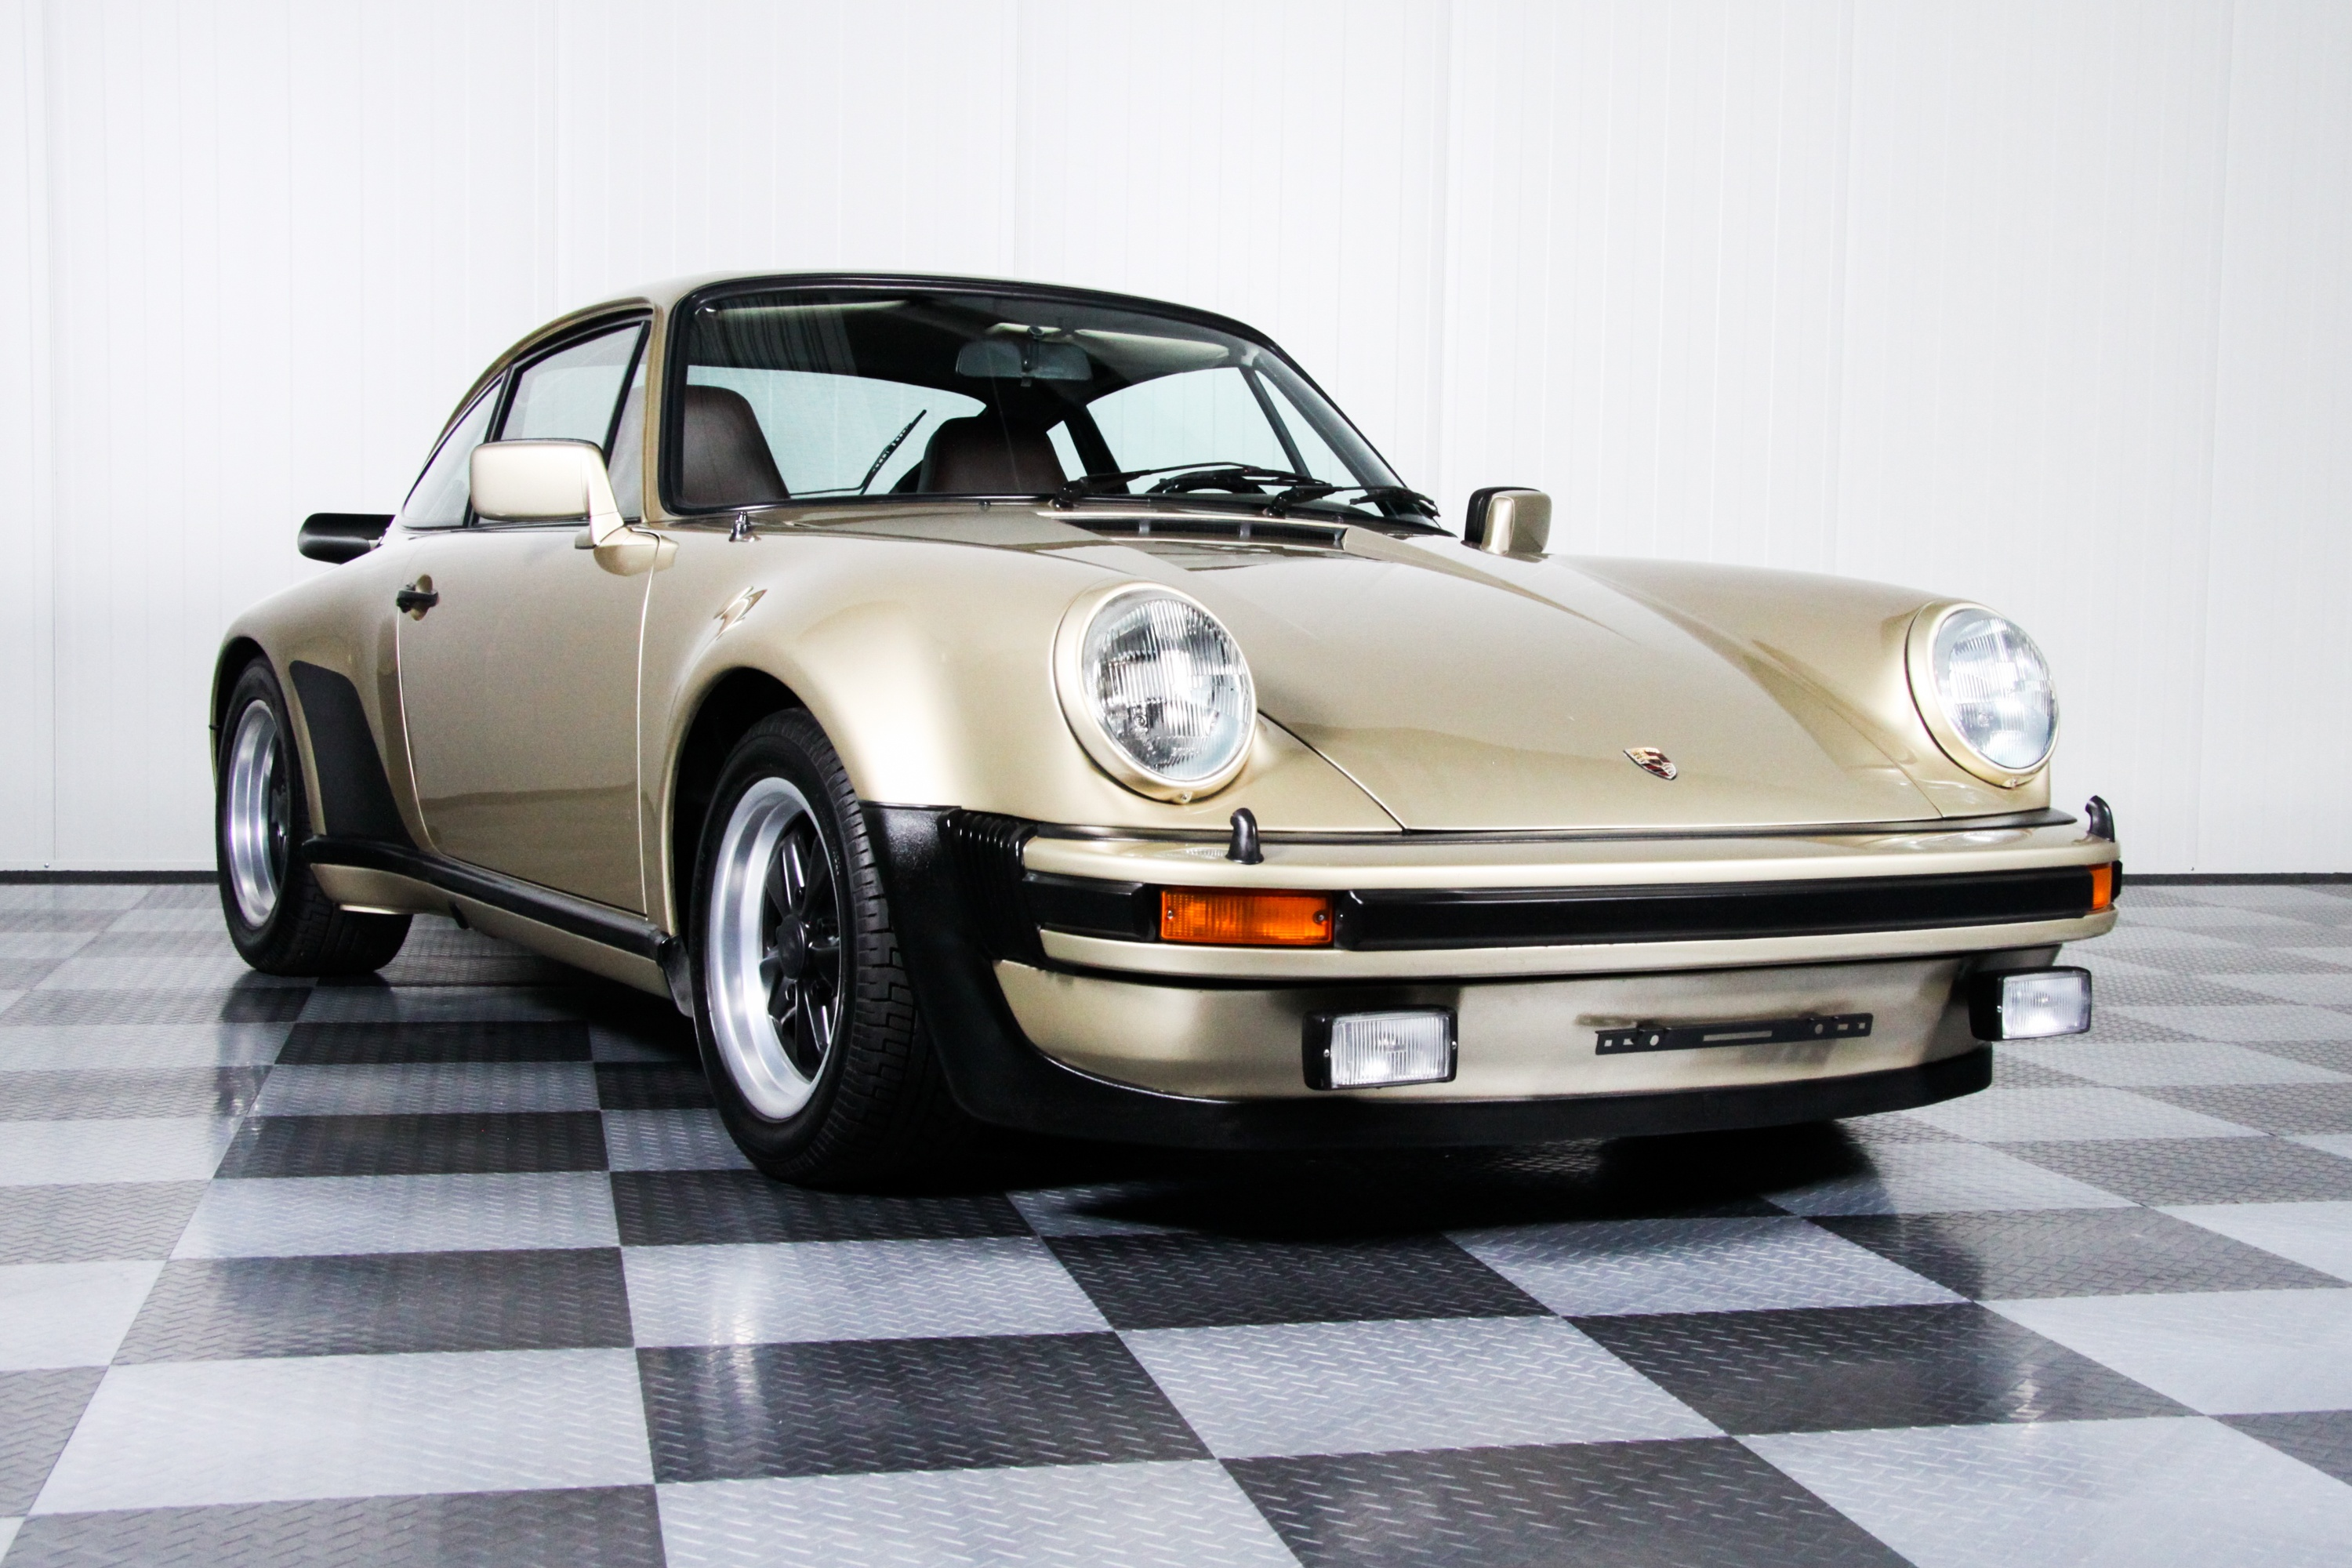 1976 porsche 911 turbo 911 turbo 930 early 1976 eu model german new delivered classic. Black Bedroom Furniture Sets. Home Design Ideas